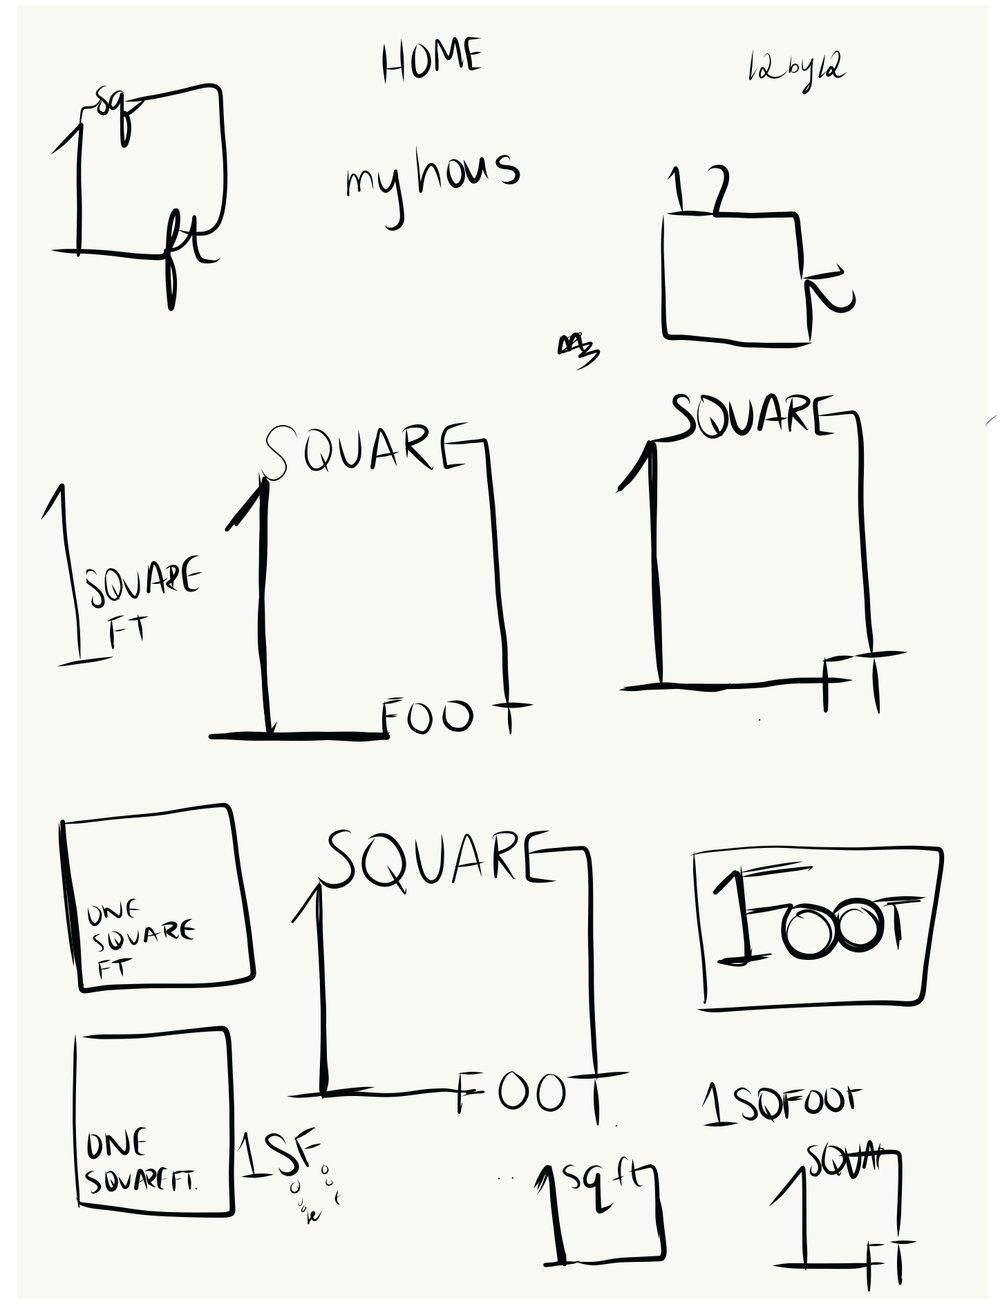 One Square Ft